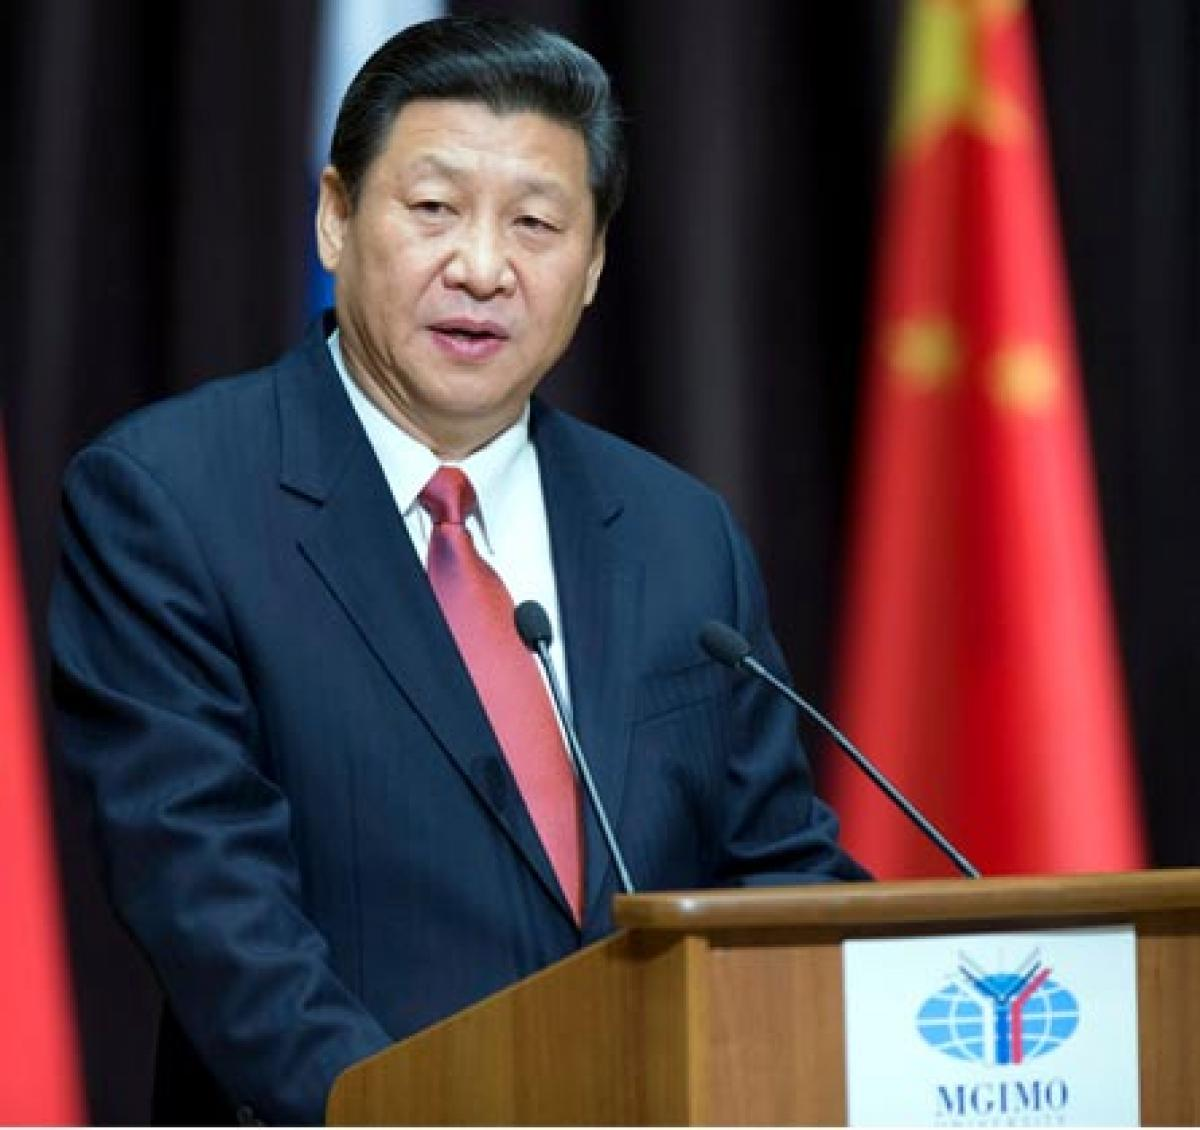 Doors to China market always open for America: Chinese President Xi Jinping